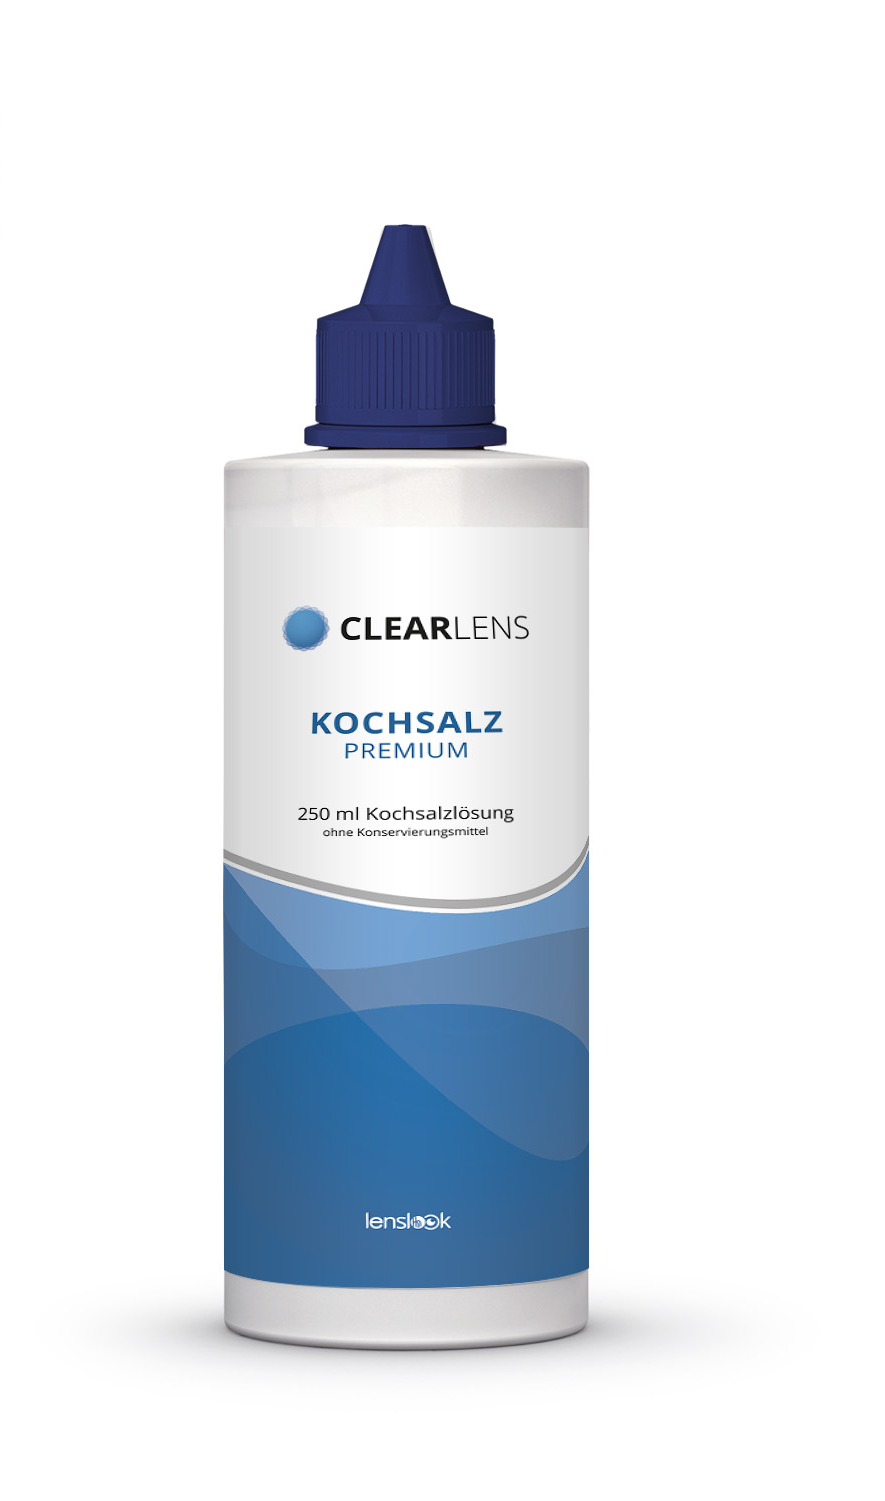 clearlens_premium_250ml_kochsalz